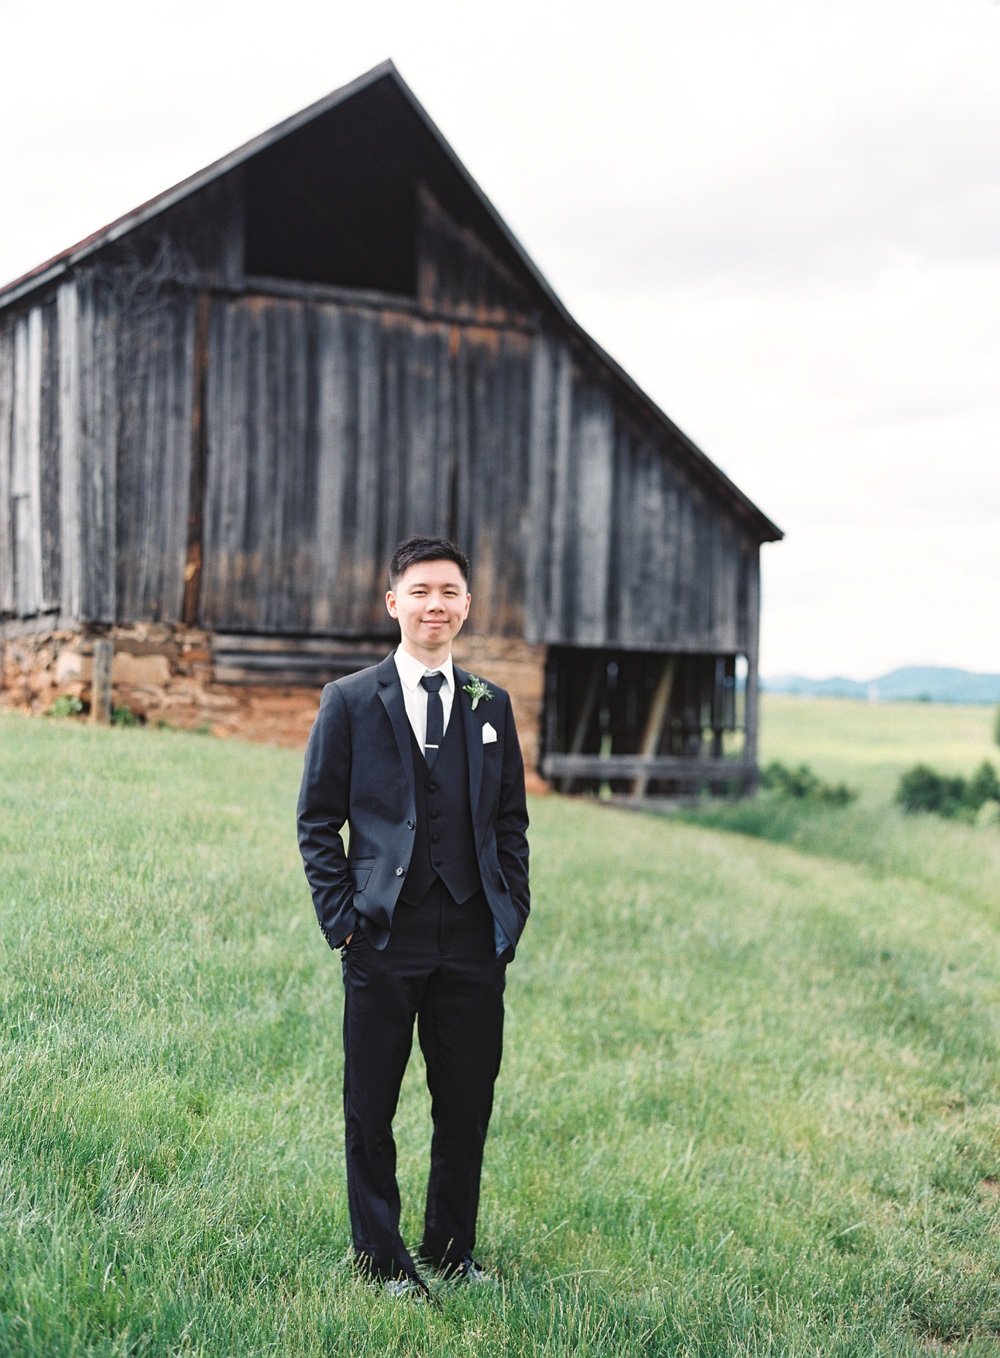 virginia-wedding-8-06152015-ky